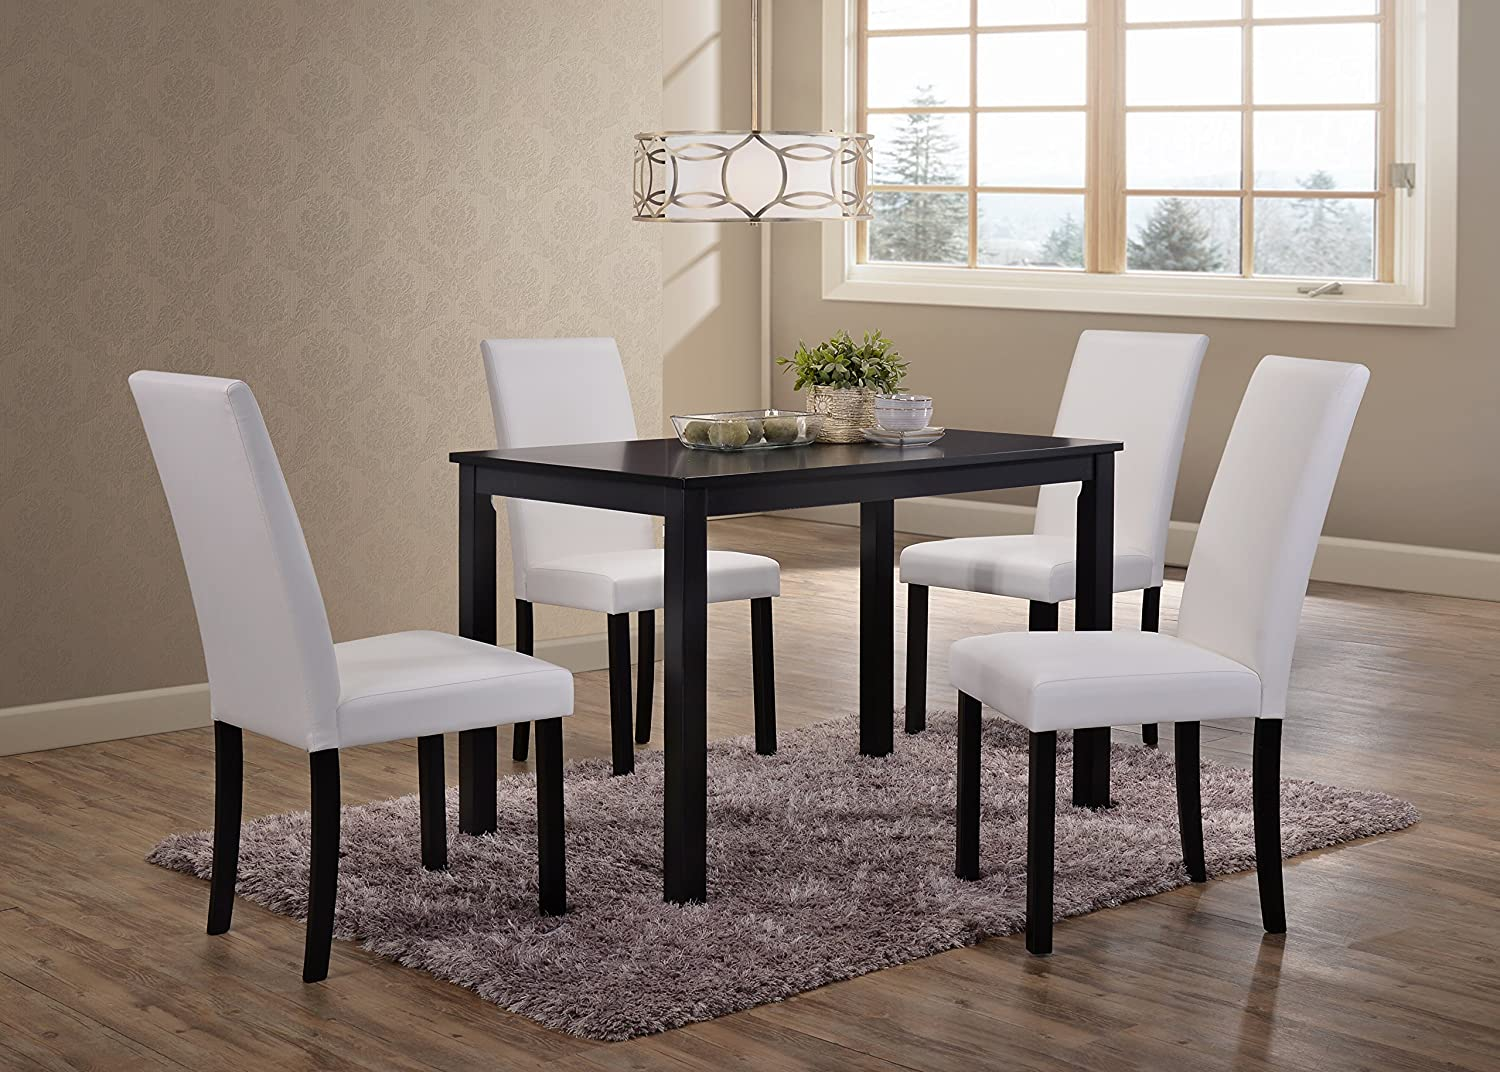 Amazon com kings brand wood dining dinette kitchen table 4 upholstered parson chairs white table chair sets